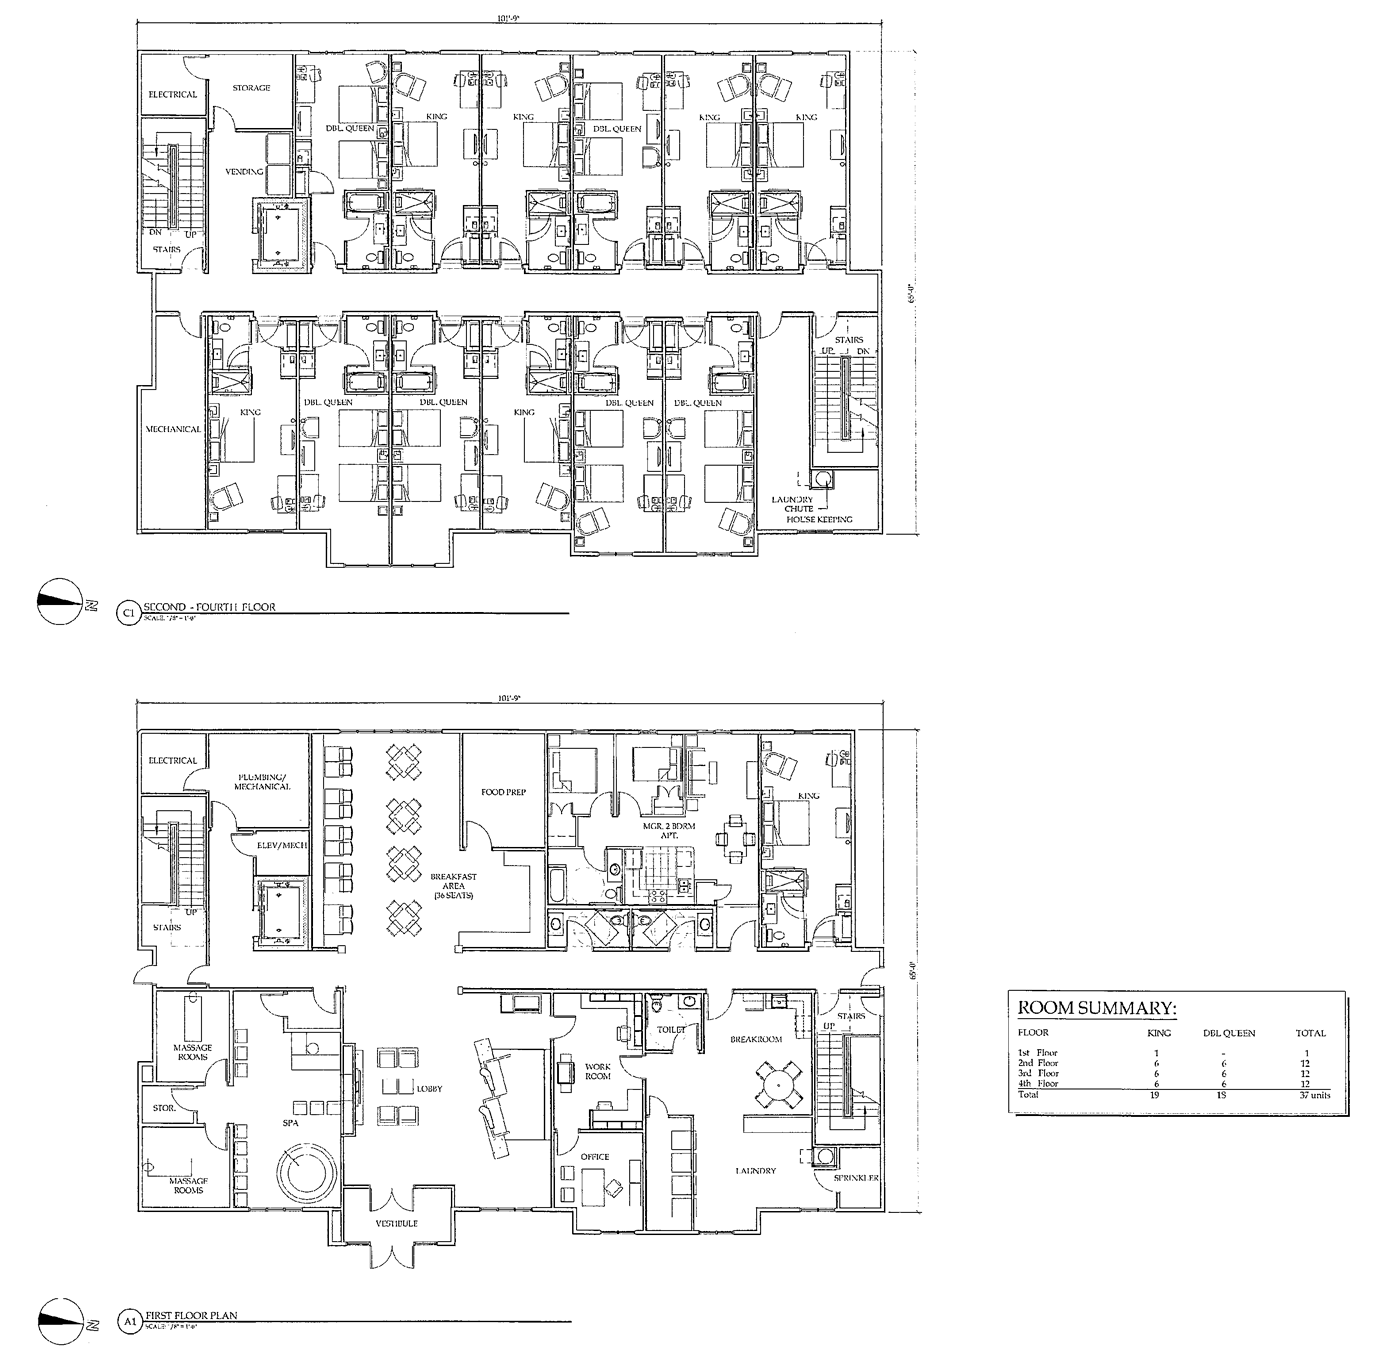 339-Elmira-Road---4-Story-Hotel---SPR---Complete-Drawing-Set---02-14-14---Reduced2